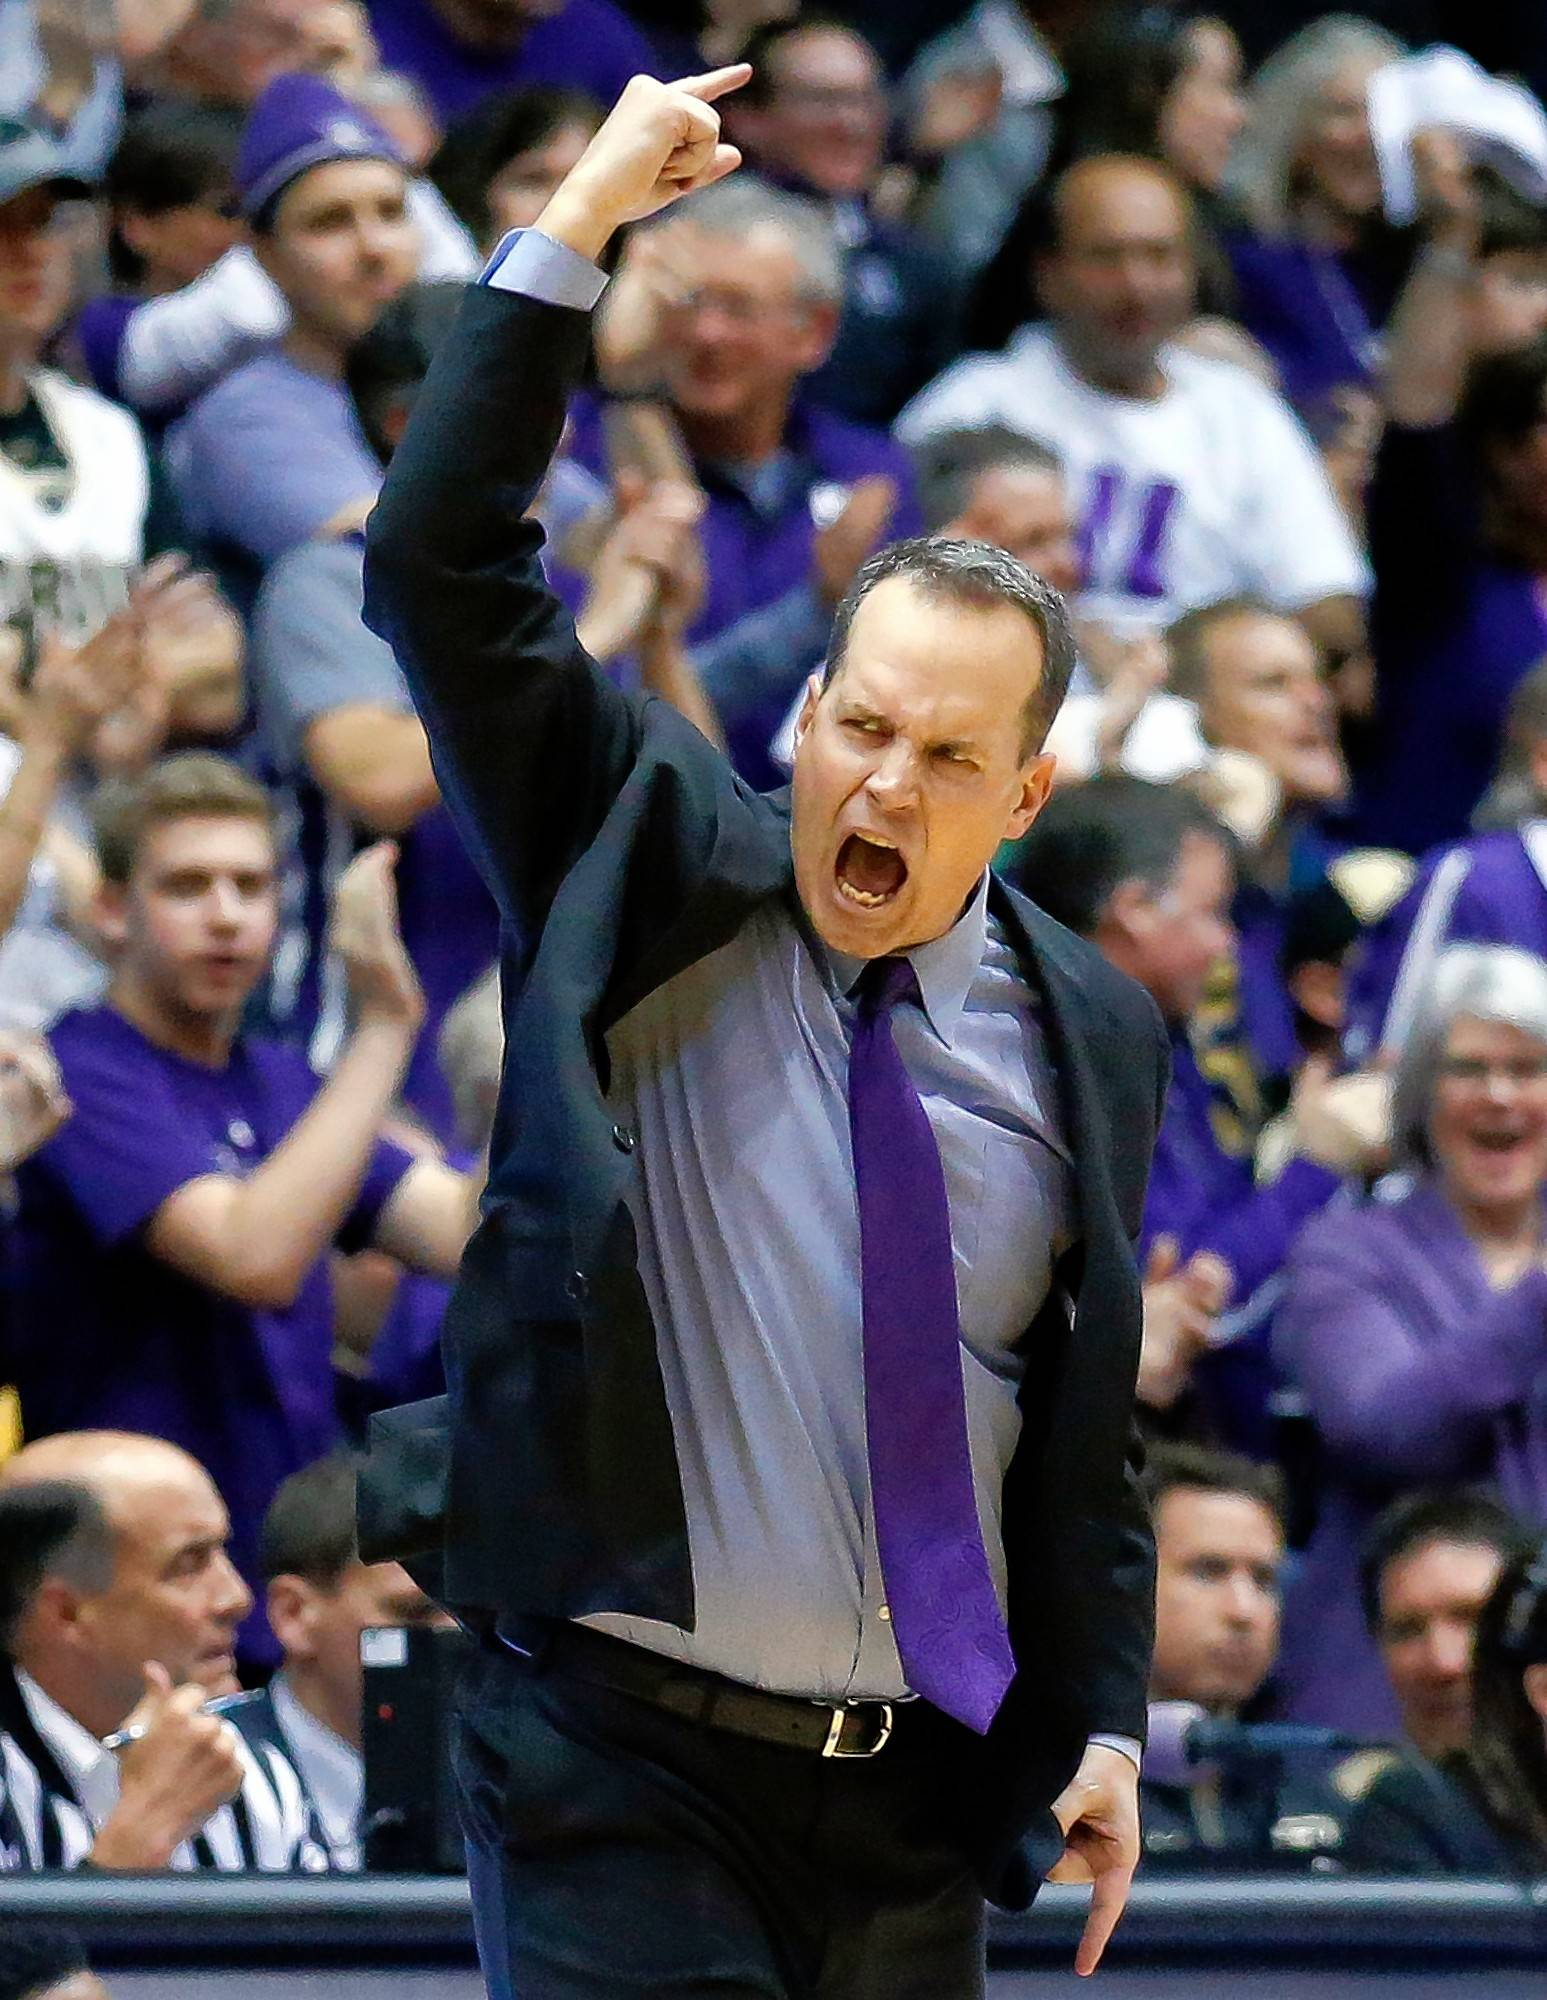 Northwestern head coach Chris Collins reacts after guard Bryant McIntosh scored a basket against Purdue during the second half of an NCAA college basketball game, Sunday, March 5, 2017, in Evanston, Ill. Purdue won 69-65.